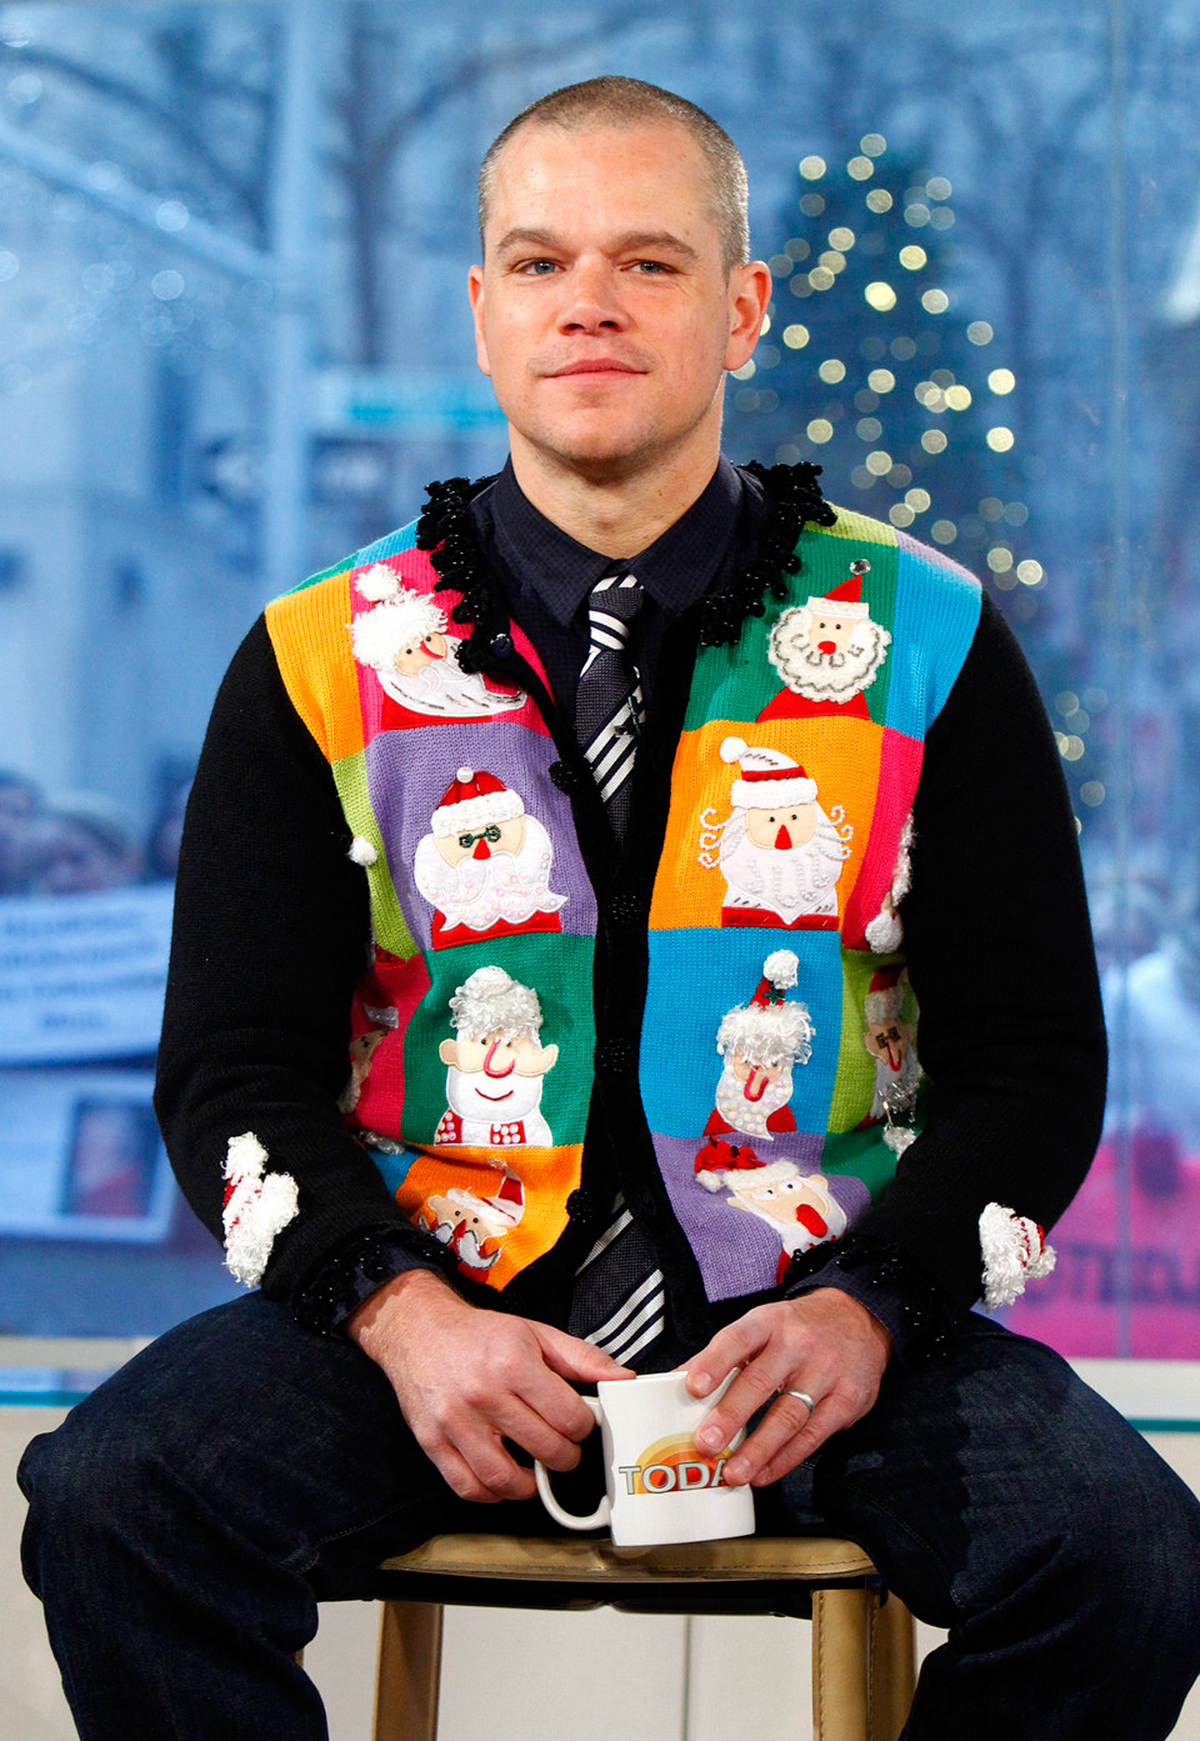 """celebrity ugly christmas sweater - 96 Normal 0 false false false EN-US X-NONE X-NONE /* Style Definitions */ table. MsoNormalTable {mso-style-name:""""Table Normal""""; mso-tstyle-rowband-size:0; mso-tstyle-colband-size:0; mso-style-noshow:yes; mso-style-priority:99; mso-style-parent:""""""""; mso-padding-alt:0in 5.4pt 0in 5.4pt; mso-para-margin:0in; mso-para-margin-bottom:.0001pt; mso-pagination:widow-orphan; font-size:12.0pt; font-family:""""Calibri"""",sans-serif; mso-ascii-font-family:Calibri; mso-ascii-theme-font:minor-latin; mso-hansi-font-family:Calibri; mso-hansi-theme-font:minor-latin;} The Oscar winner stayed warm in an ugly Santa sweater vest during a 2011 Today show interview."""